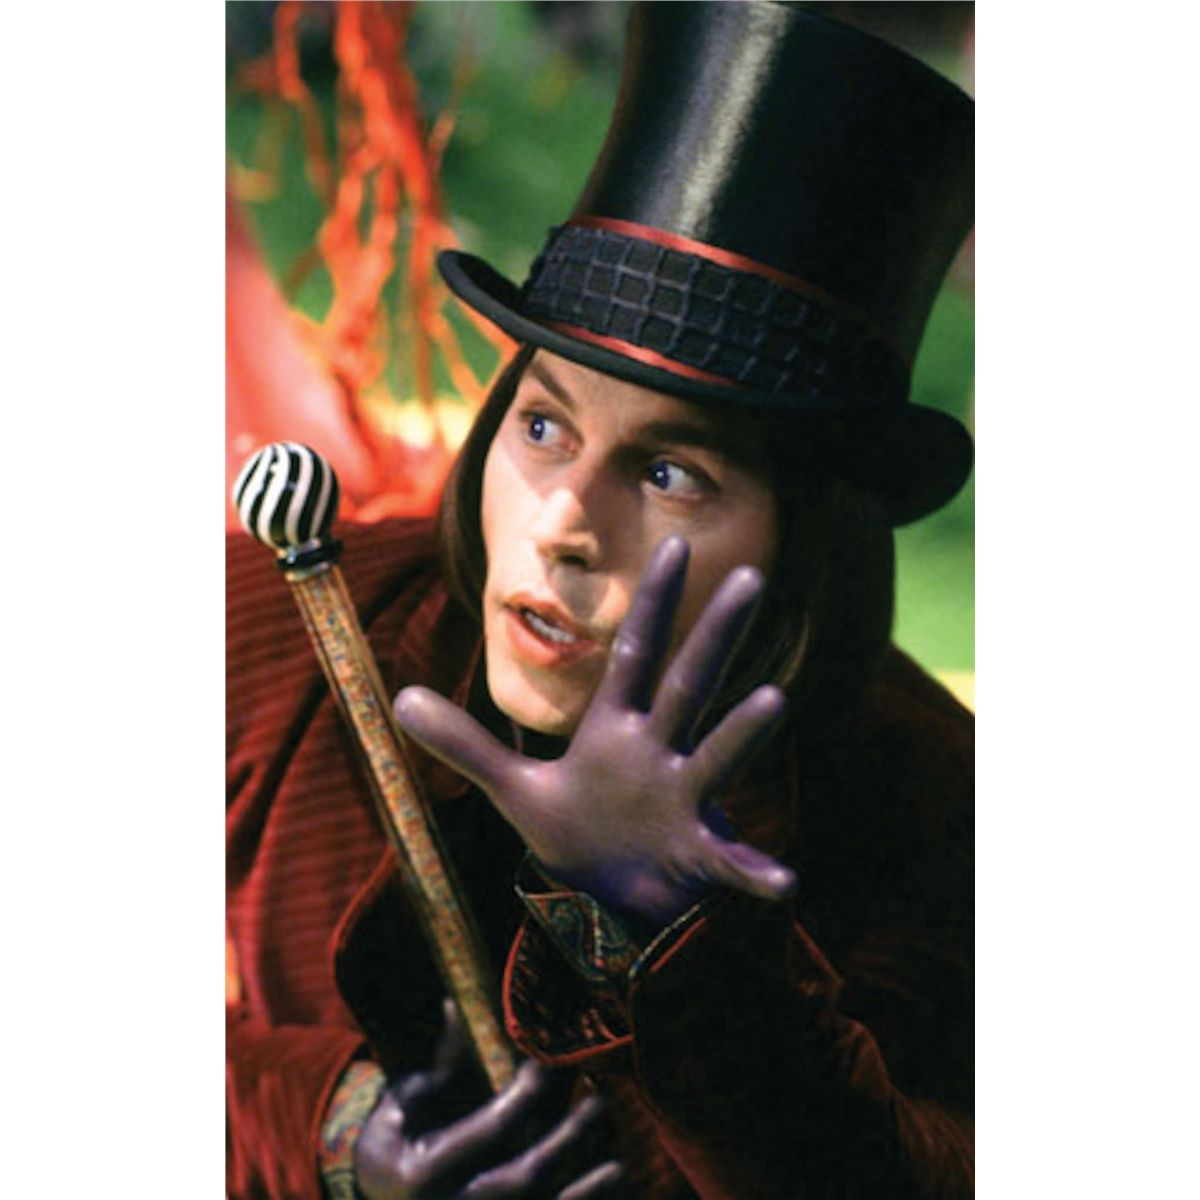 Johnny Depp Willy Wonka Cane Tim Burton Charlie And Chocolate Factory With 1-sht Poster